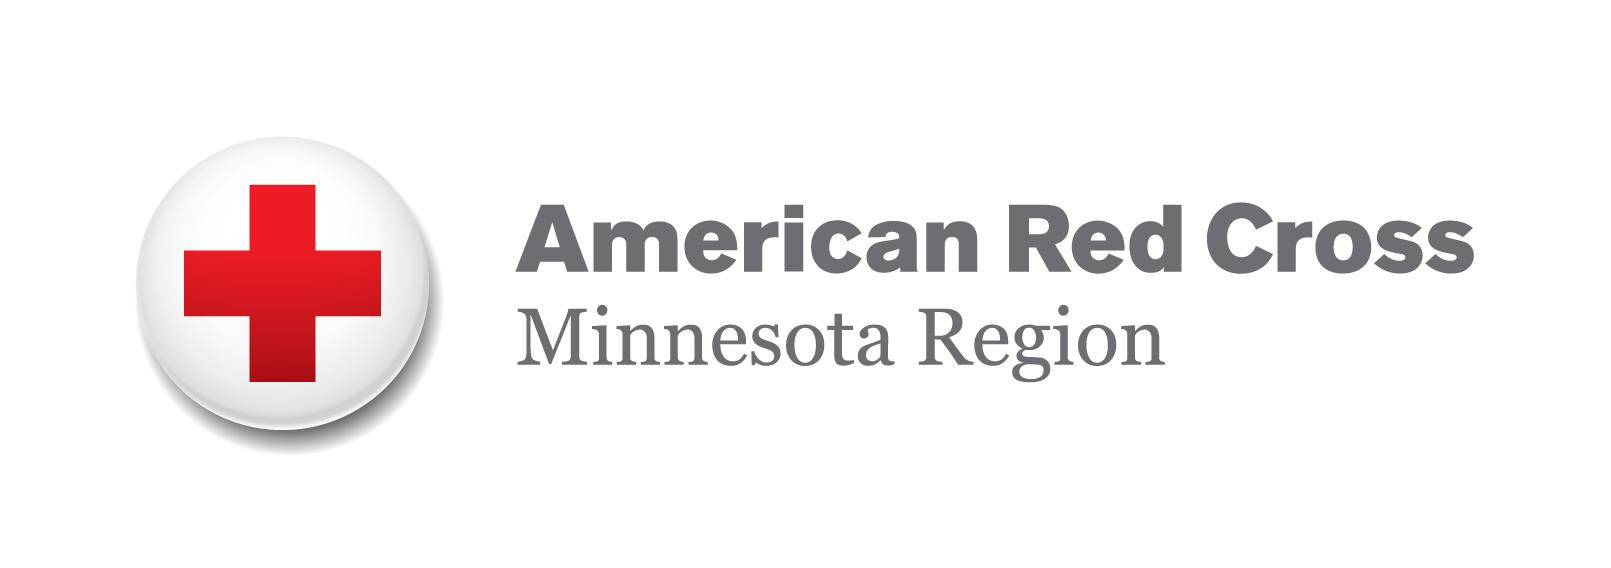 Minnesota Red Cross BLOG